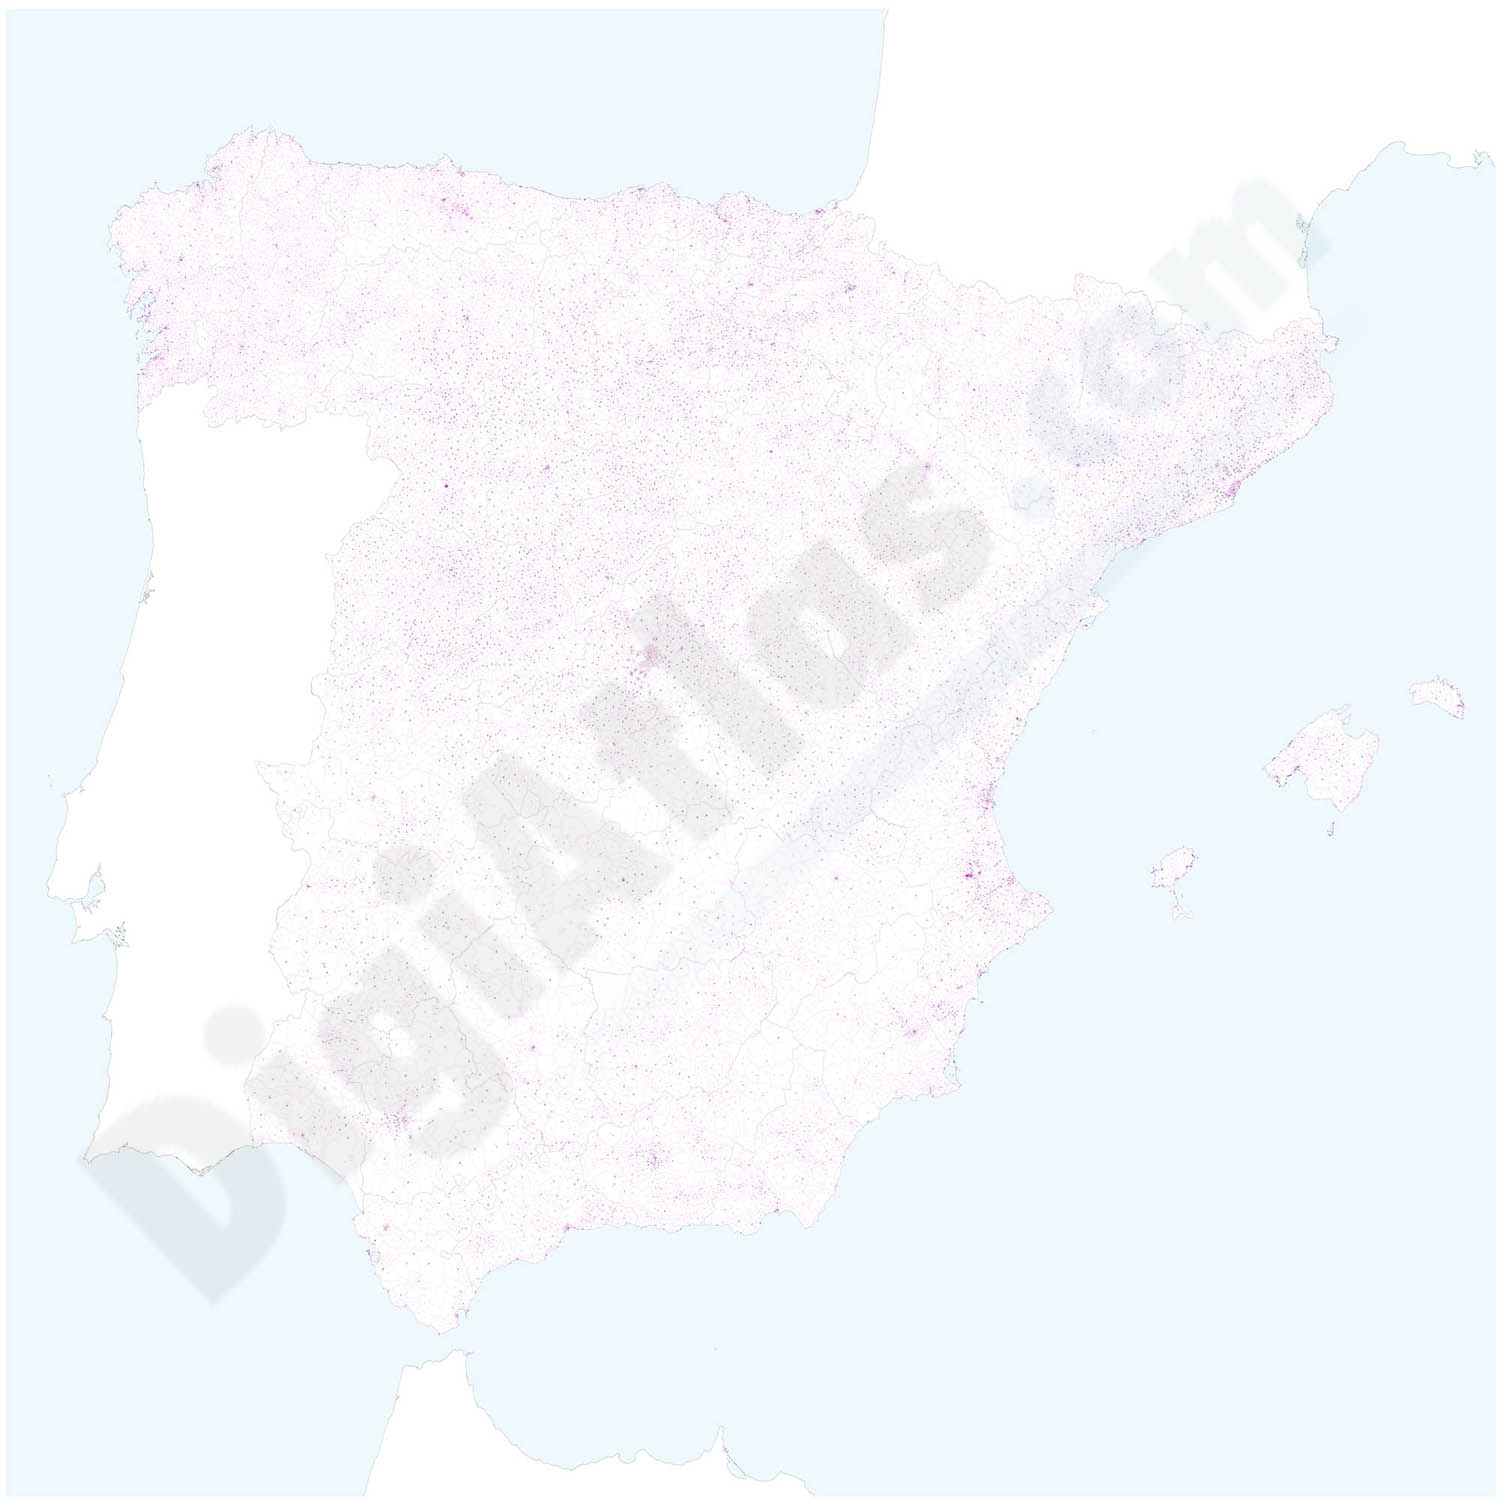 Map of Spain with all 5 digit postal codes